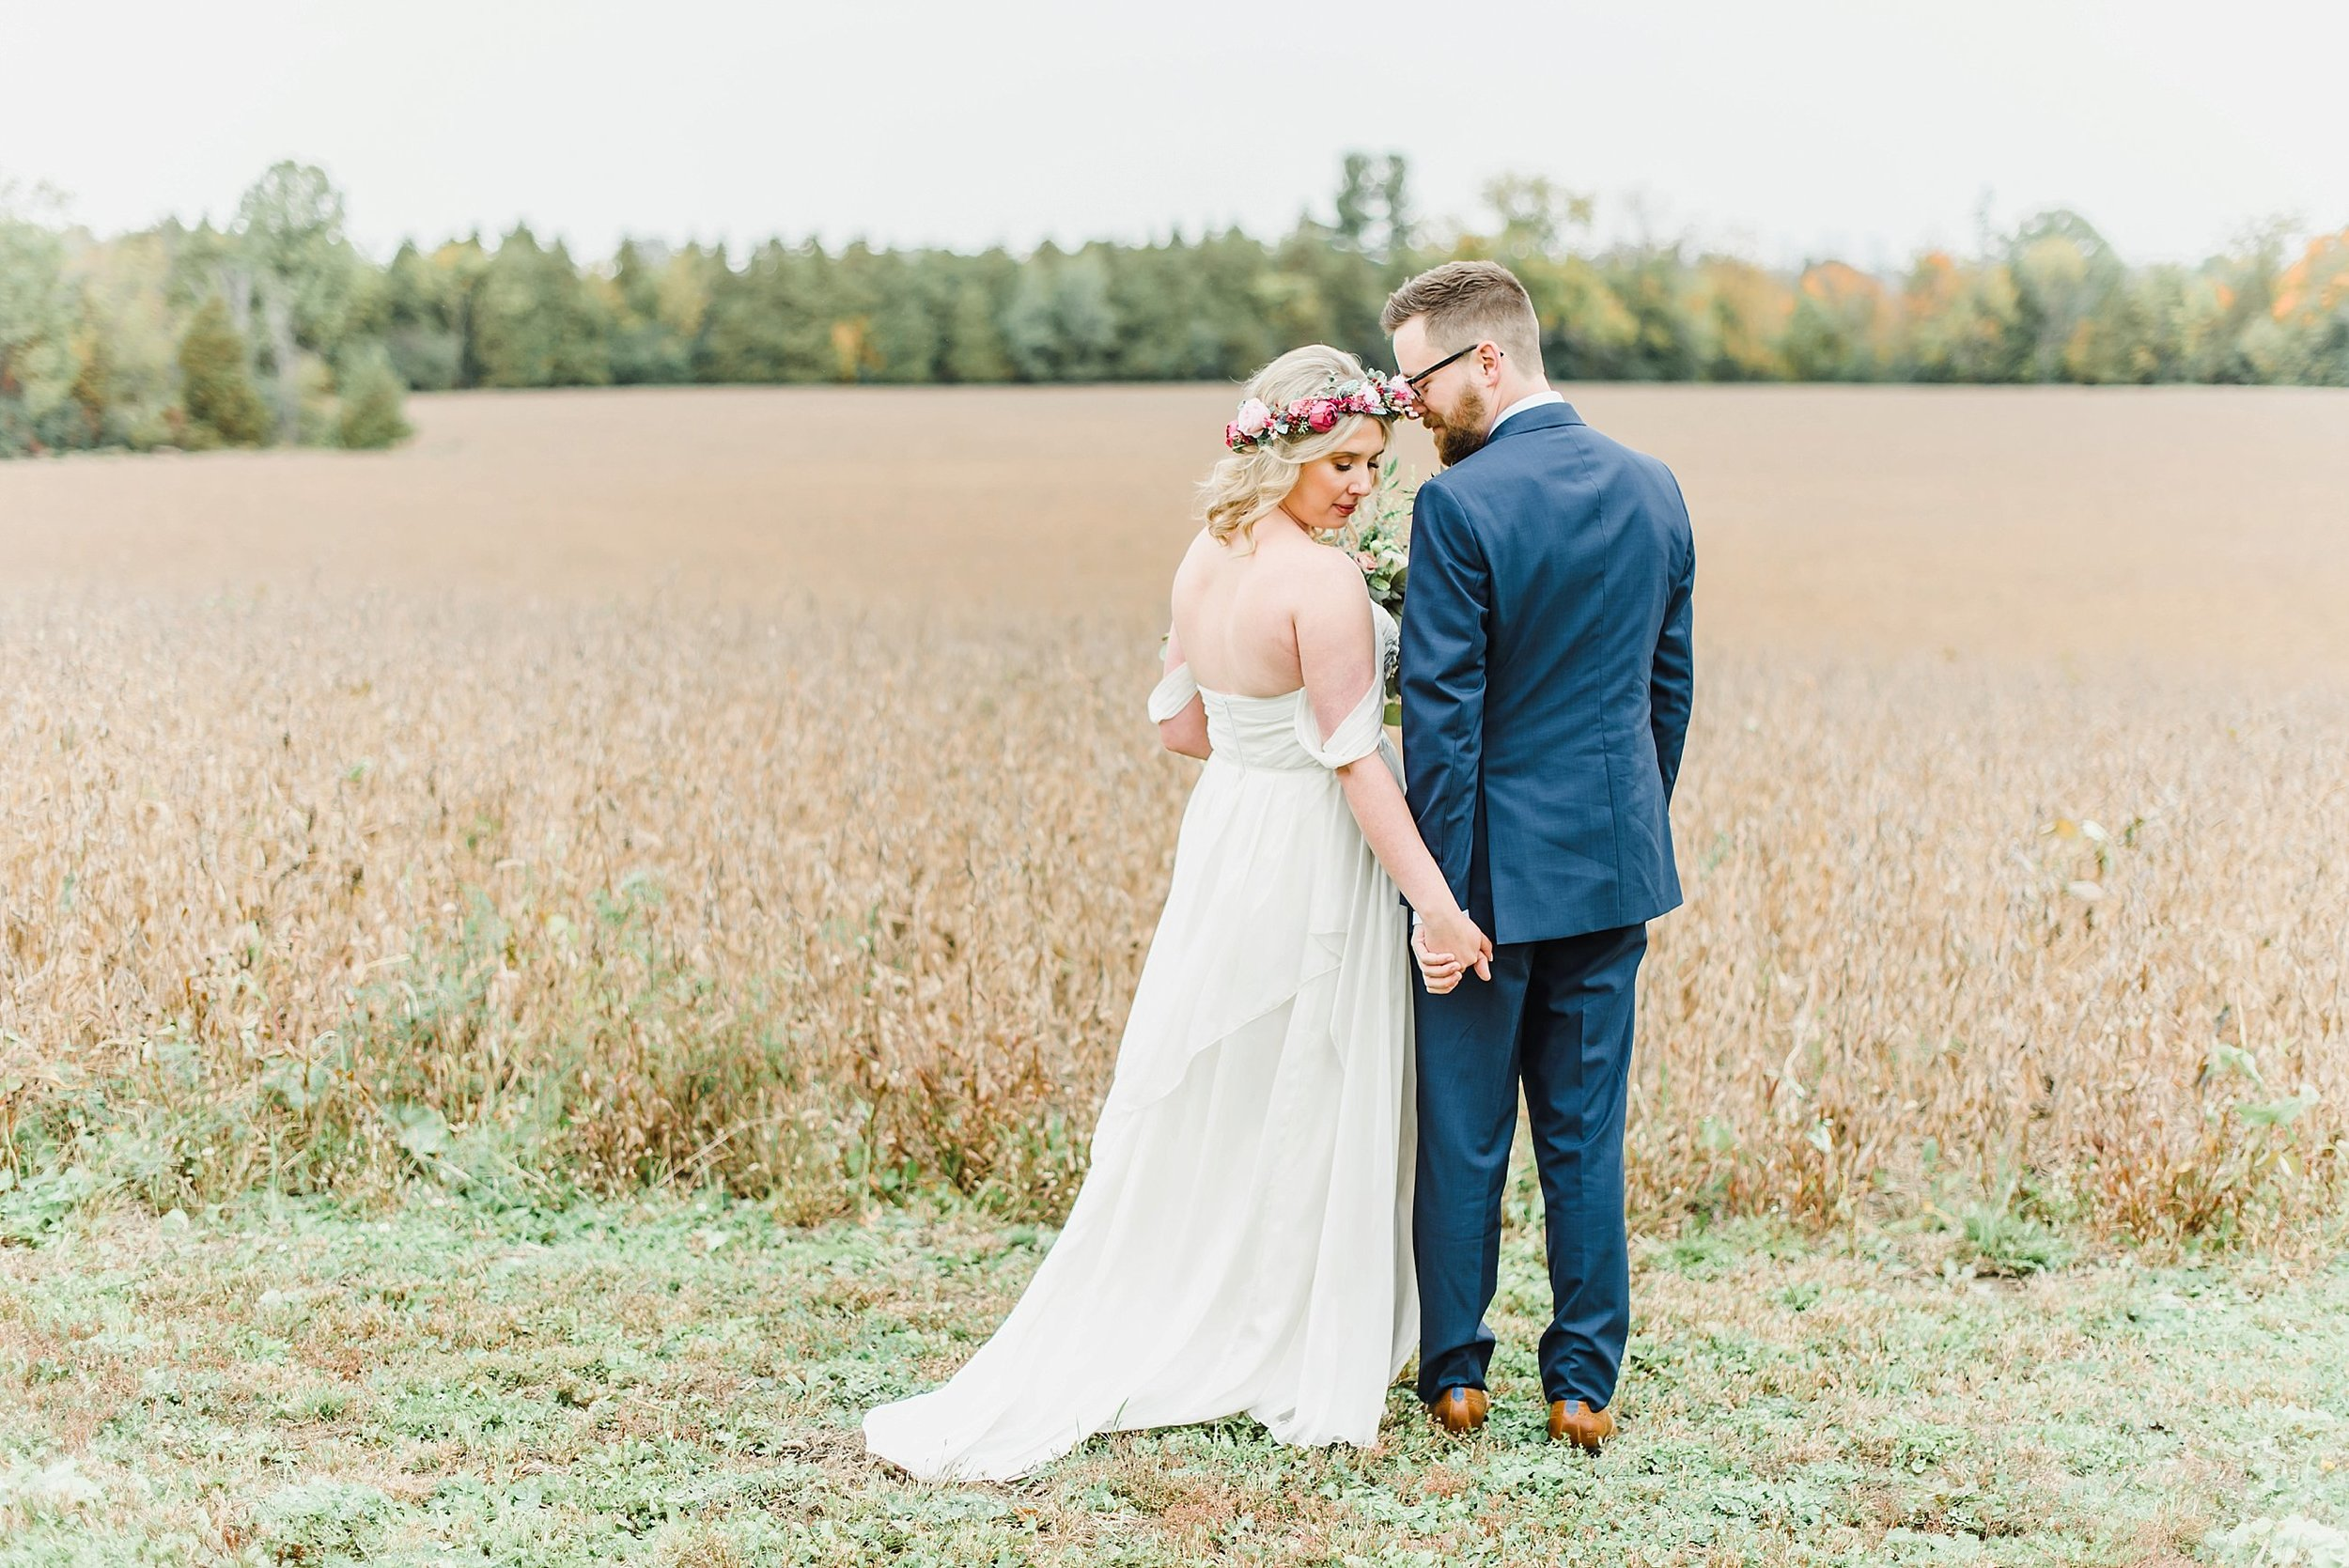 light airy indie fine art ottawa wedding photographer | Ali and Batoul Photography_0791.jpg